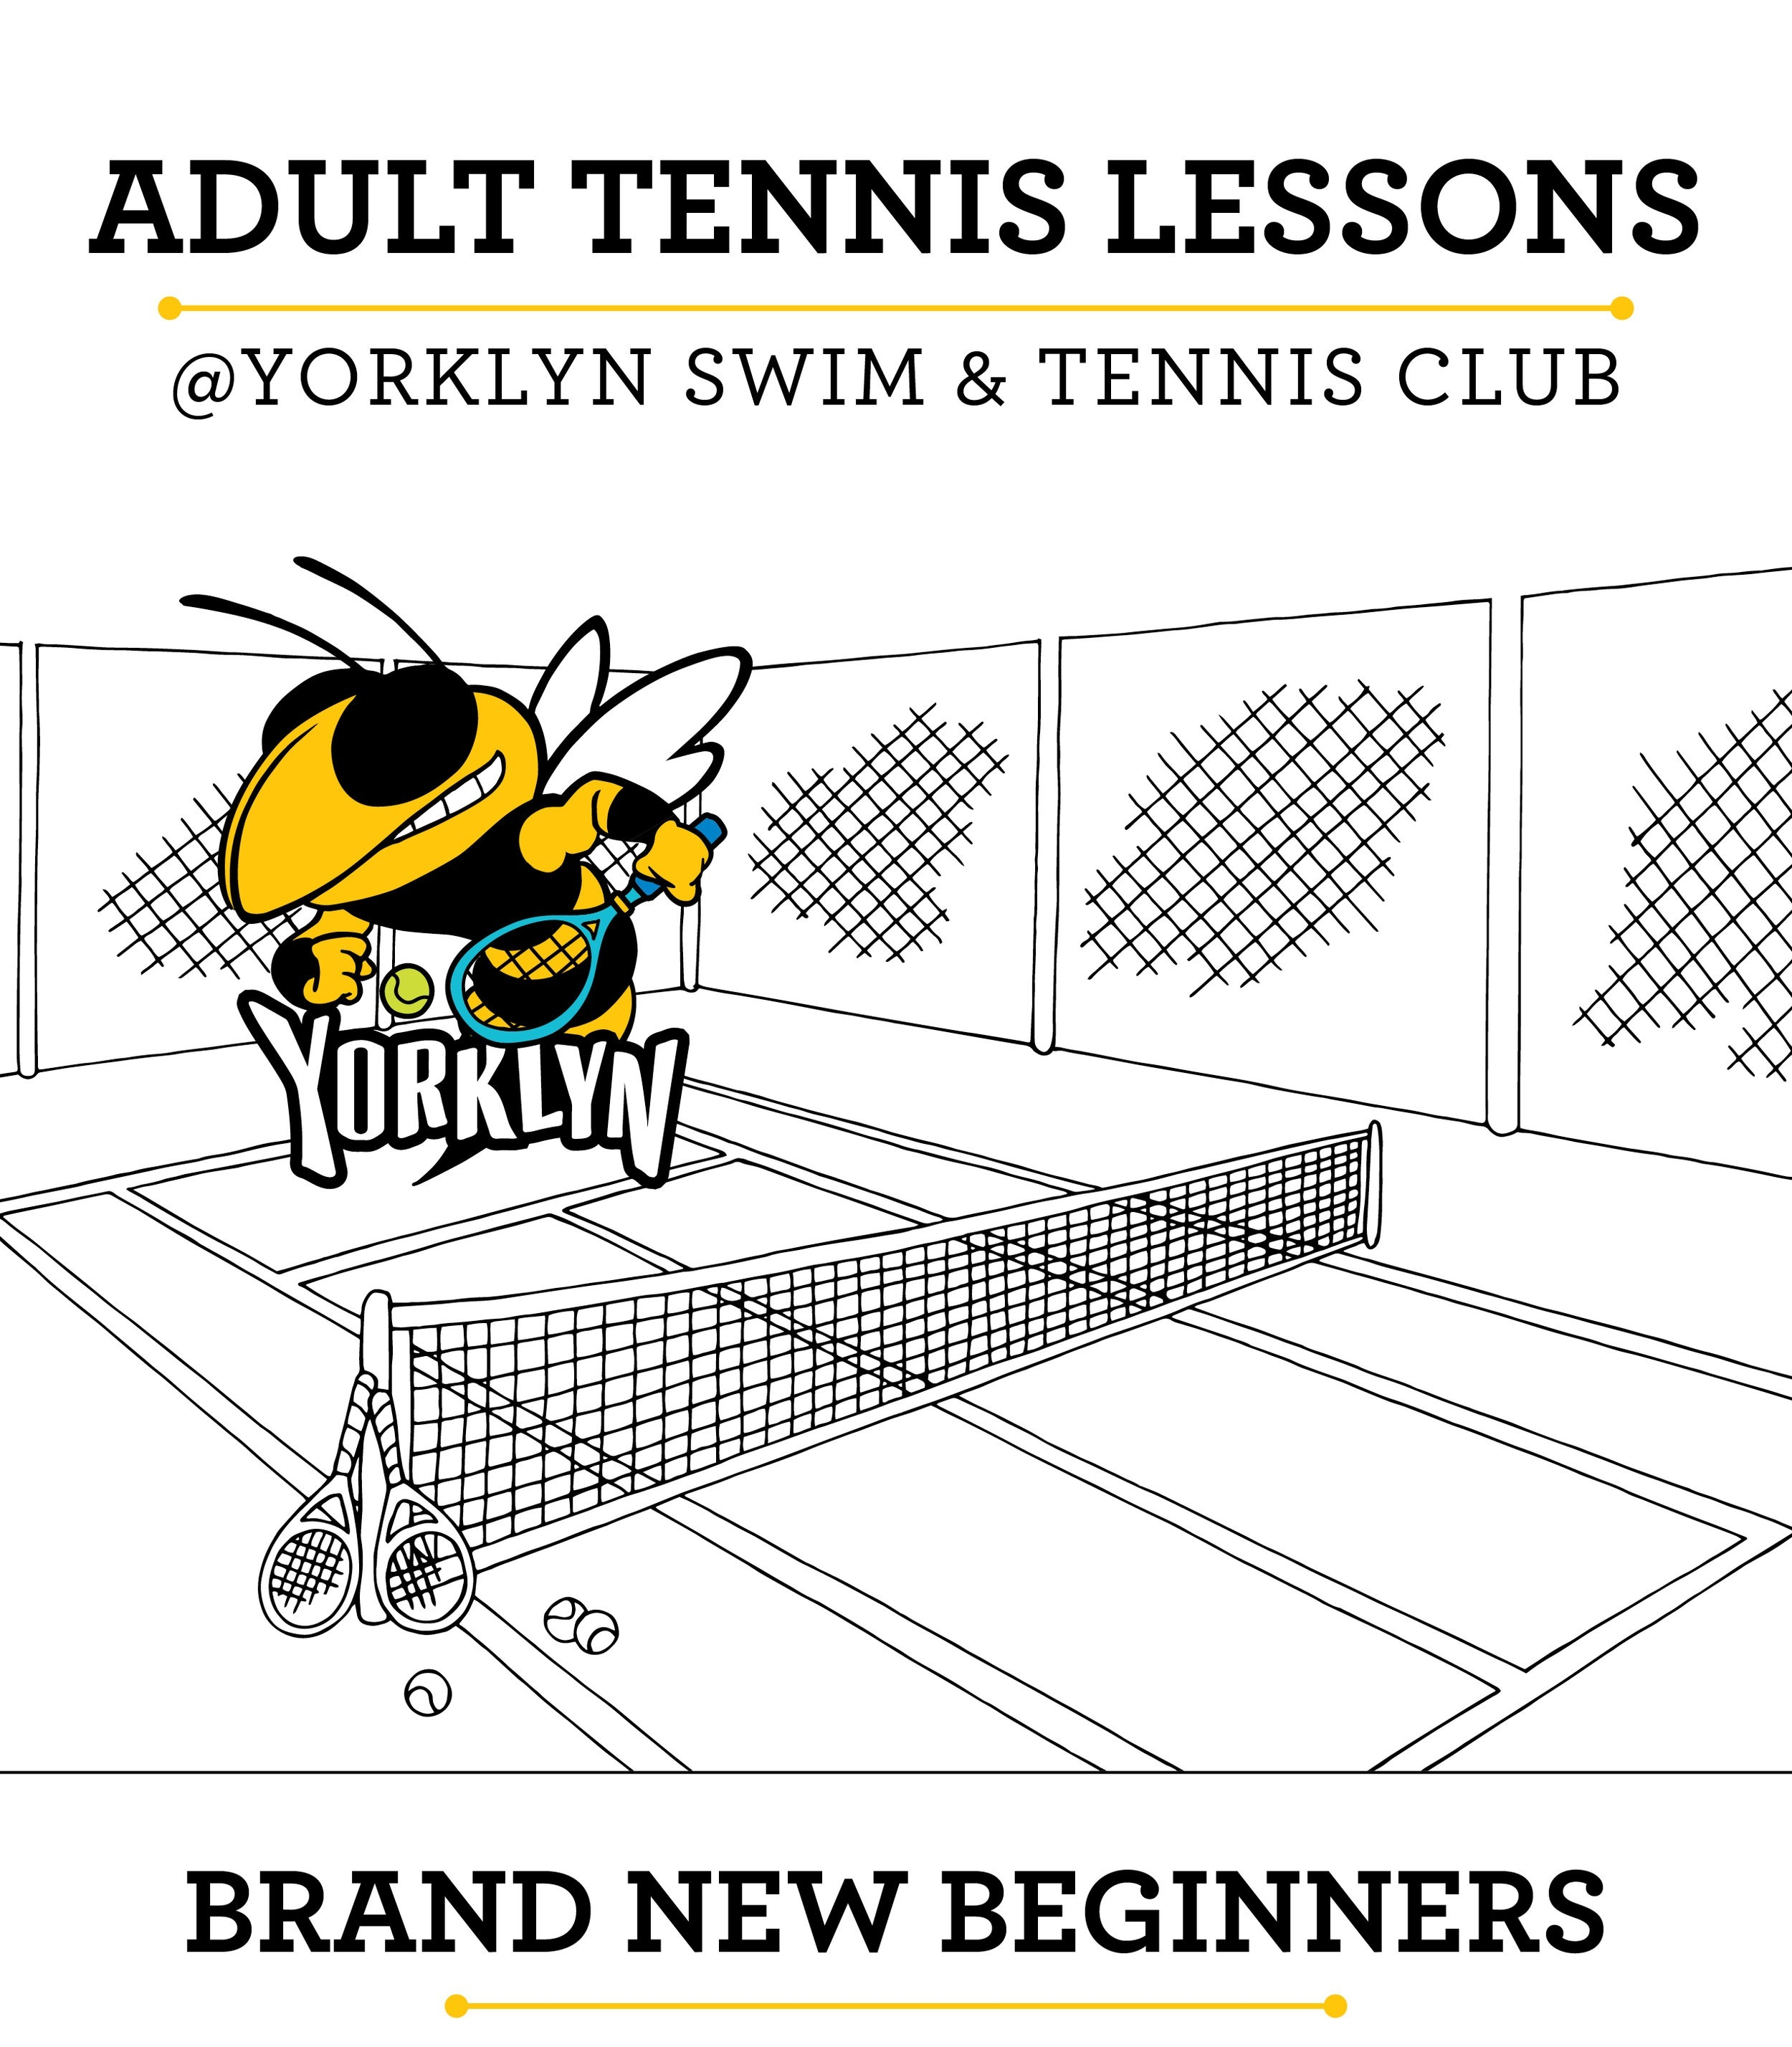 TENNIS+Beginner+Lesson+July2019+v4.jpg